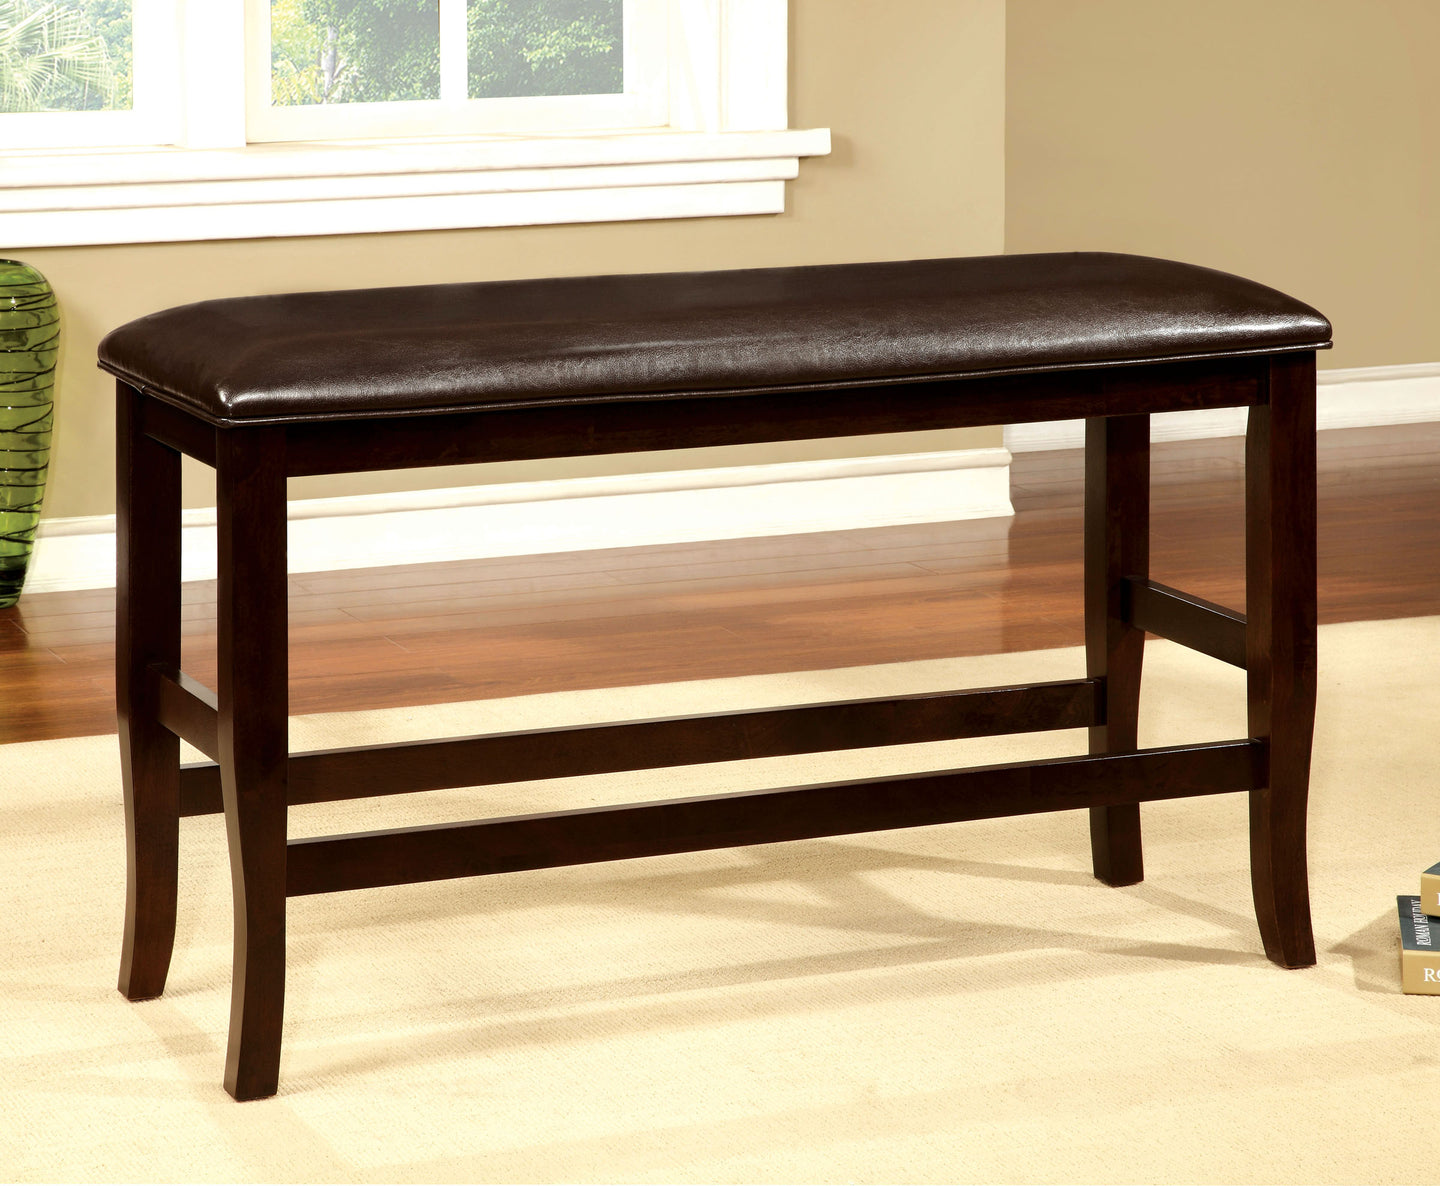 Woodside CM3024PBN Transitional Espresso Finish Counter Height Bench